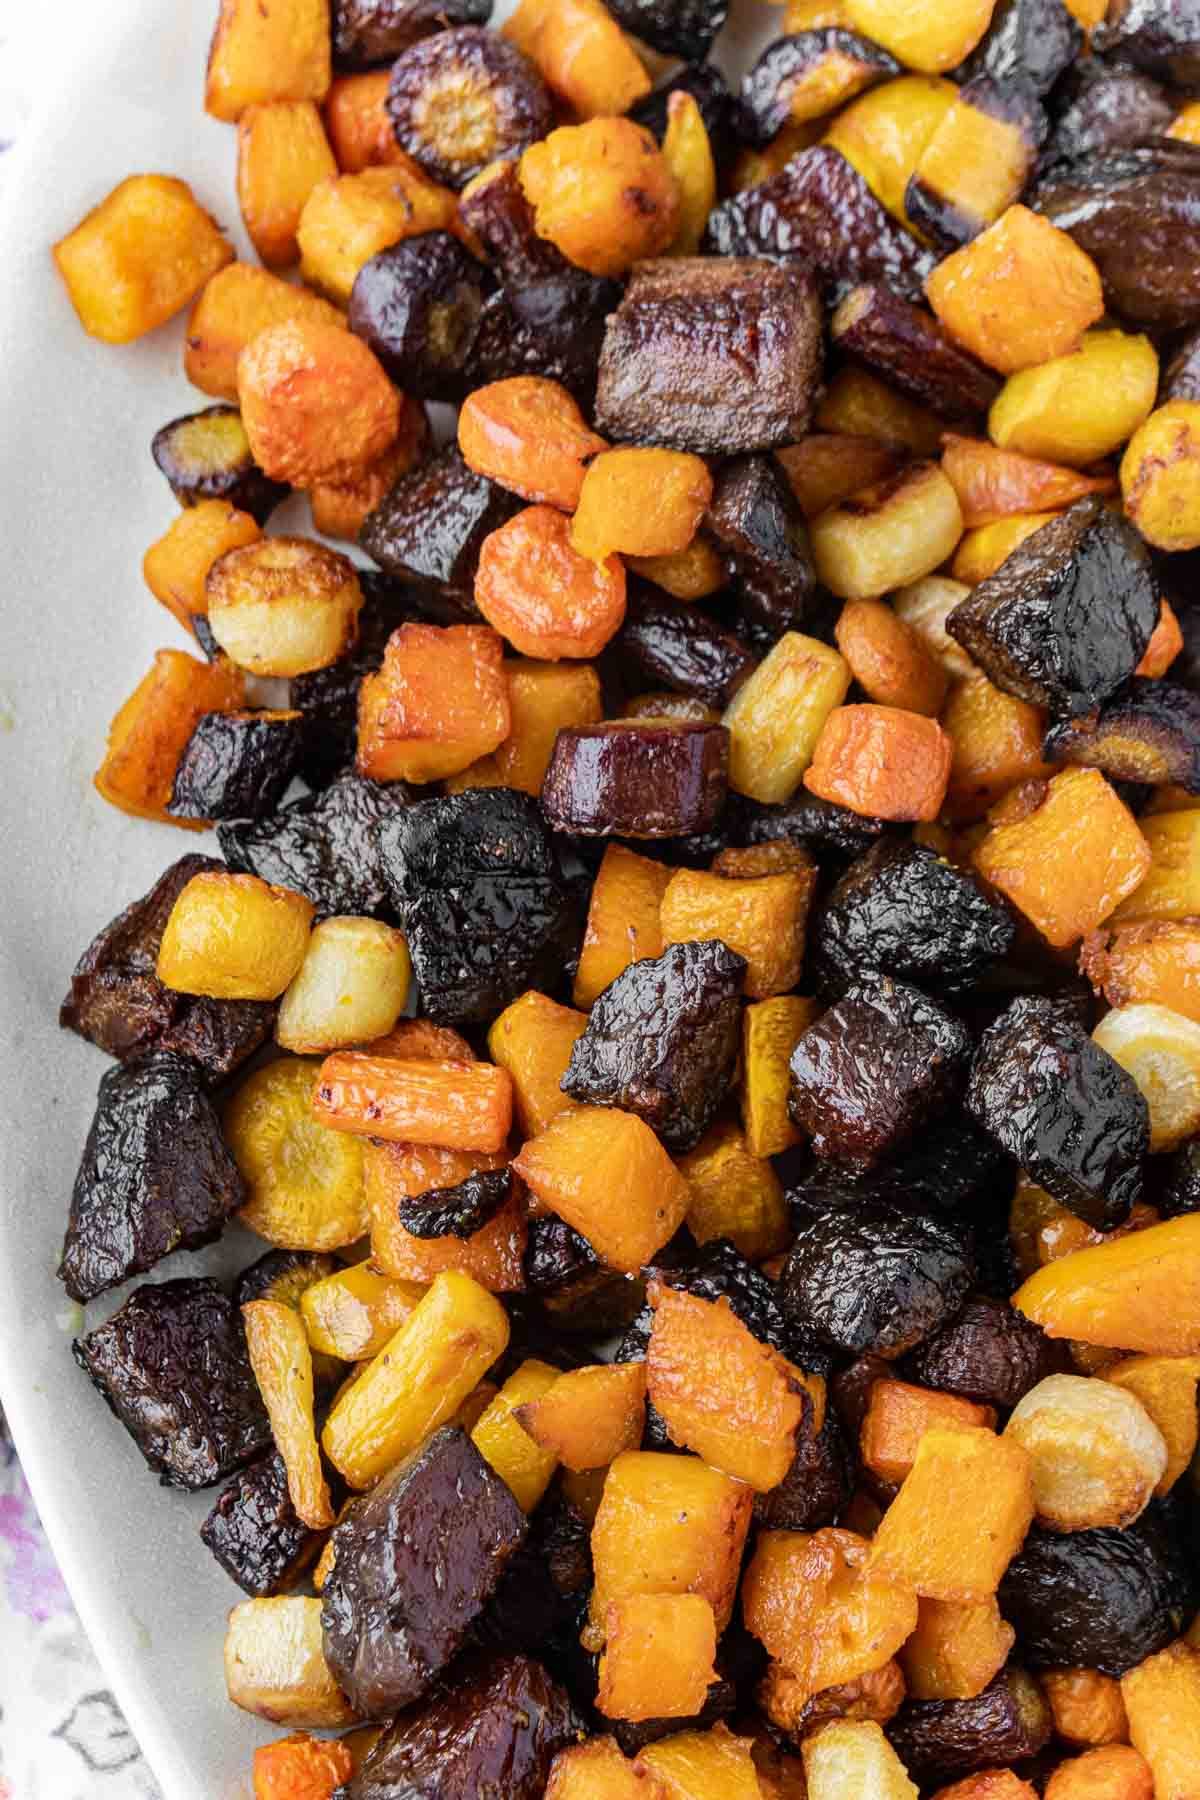 A white bowl full of roasted root vegetables